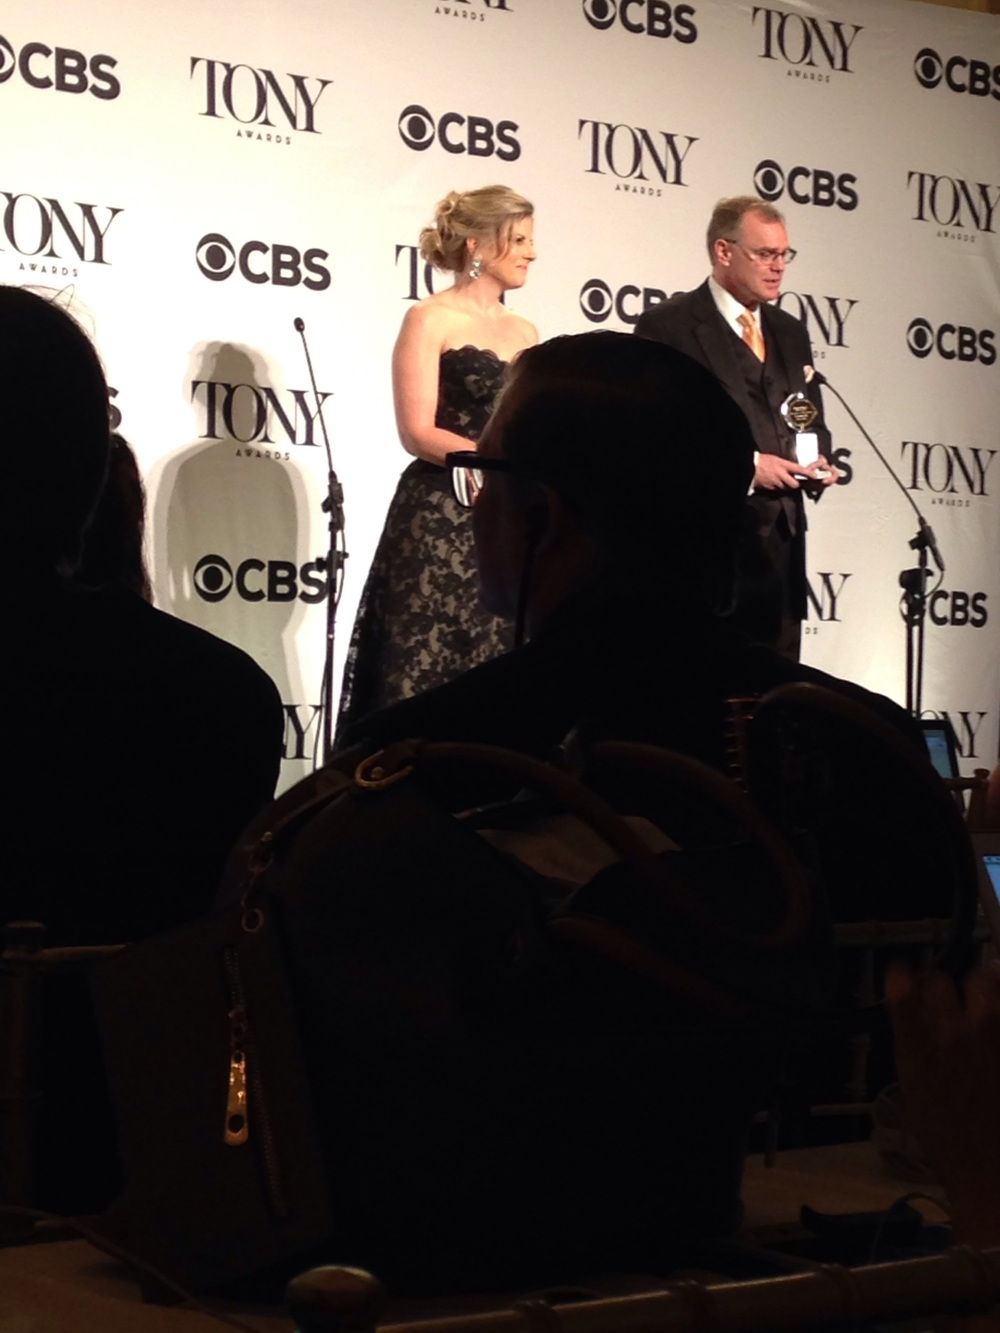 Cleveland Playhouse regional Tony Award winners take the stage